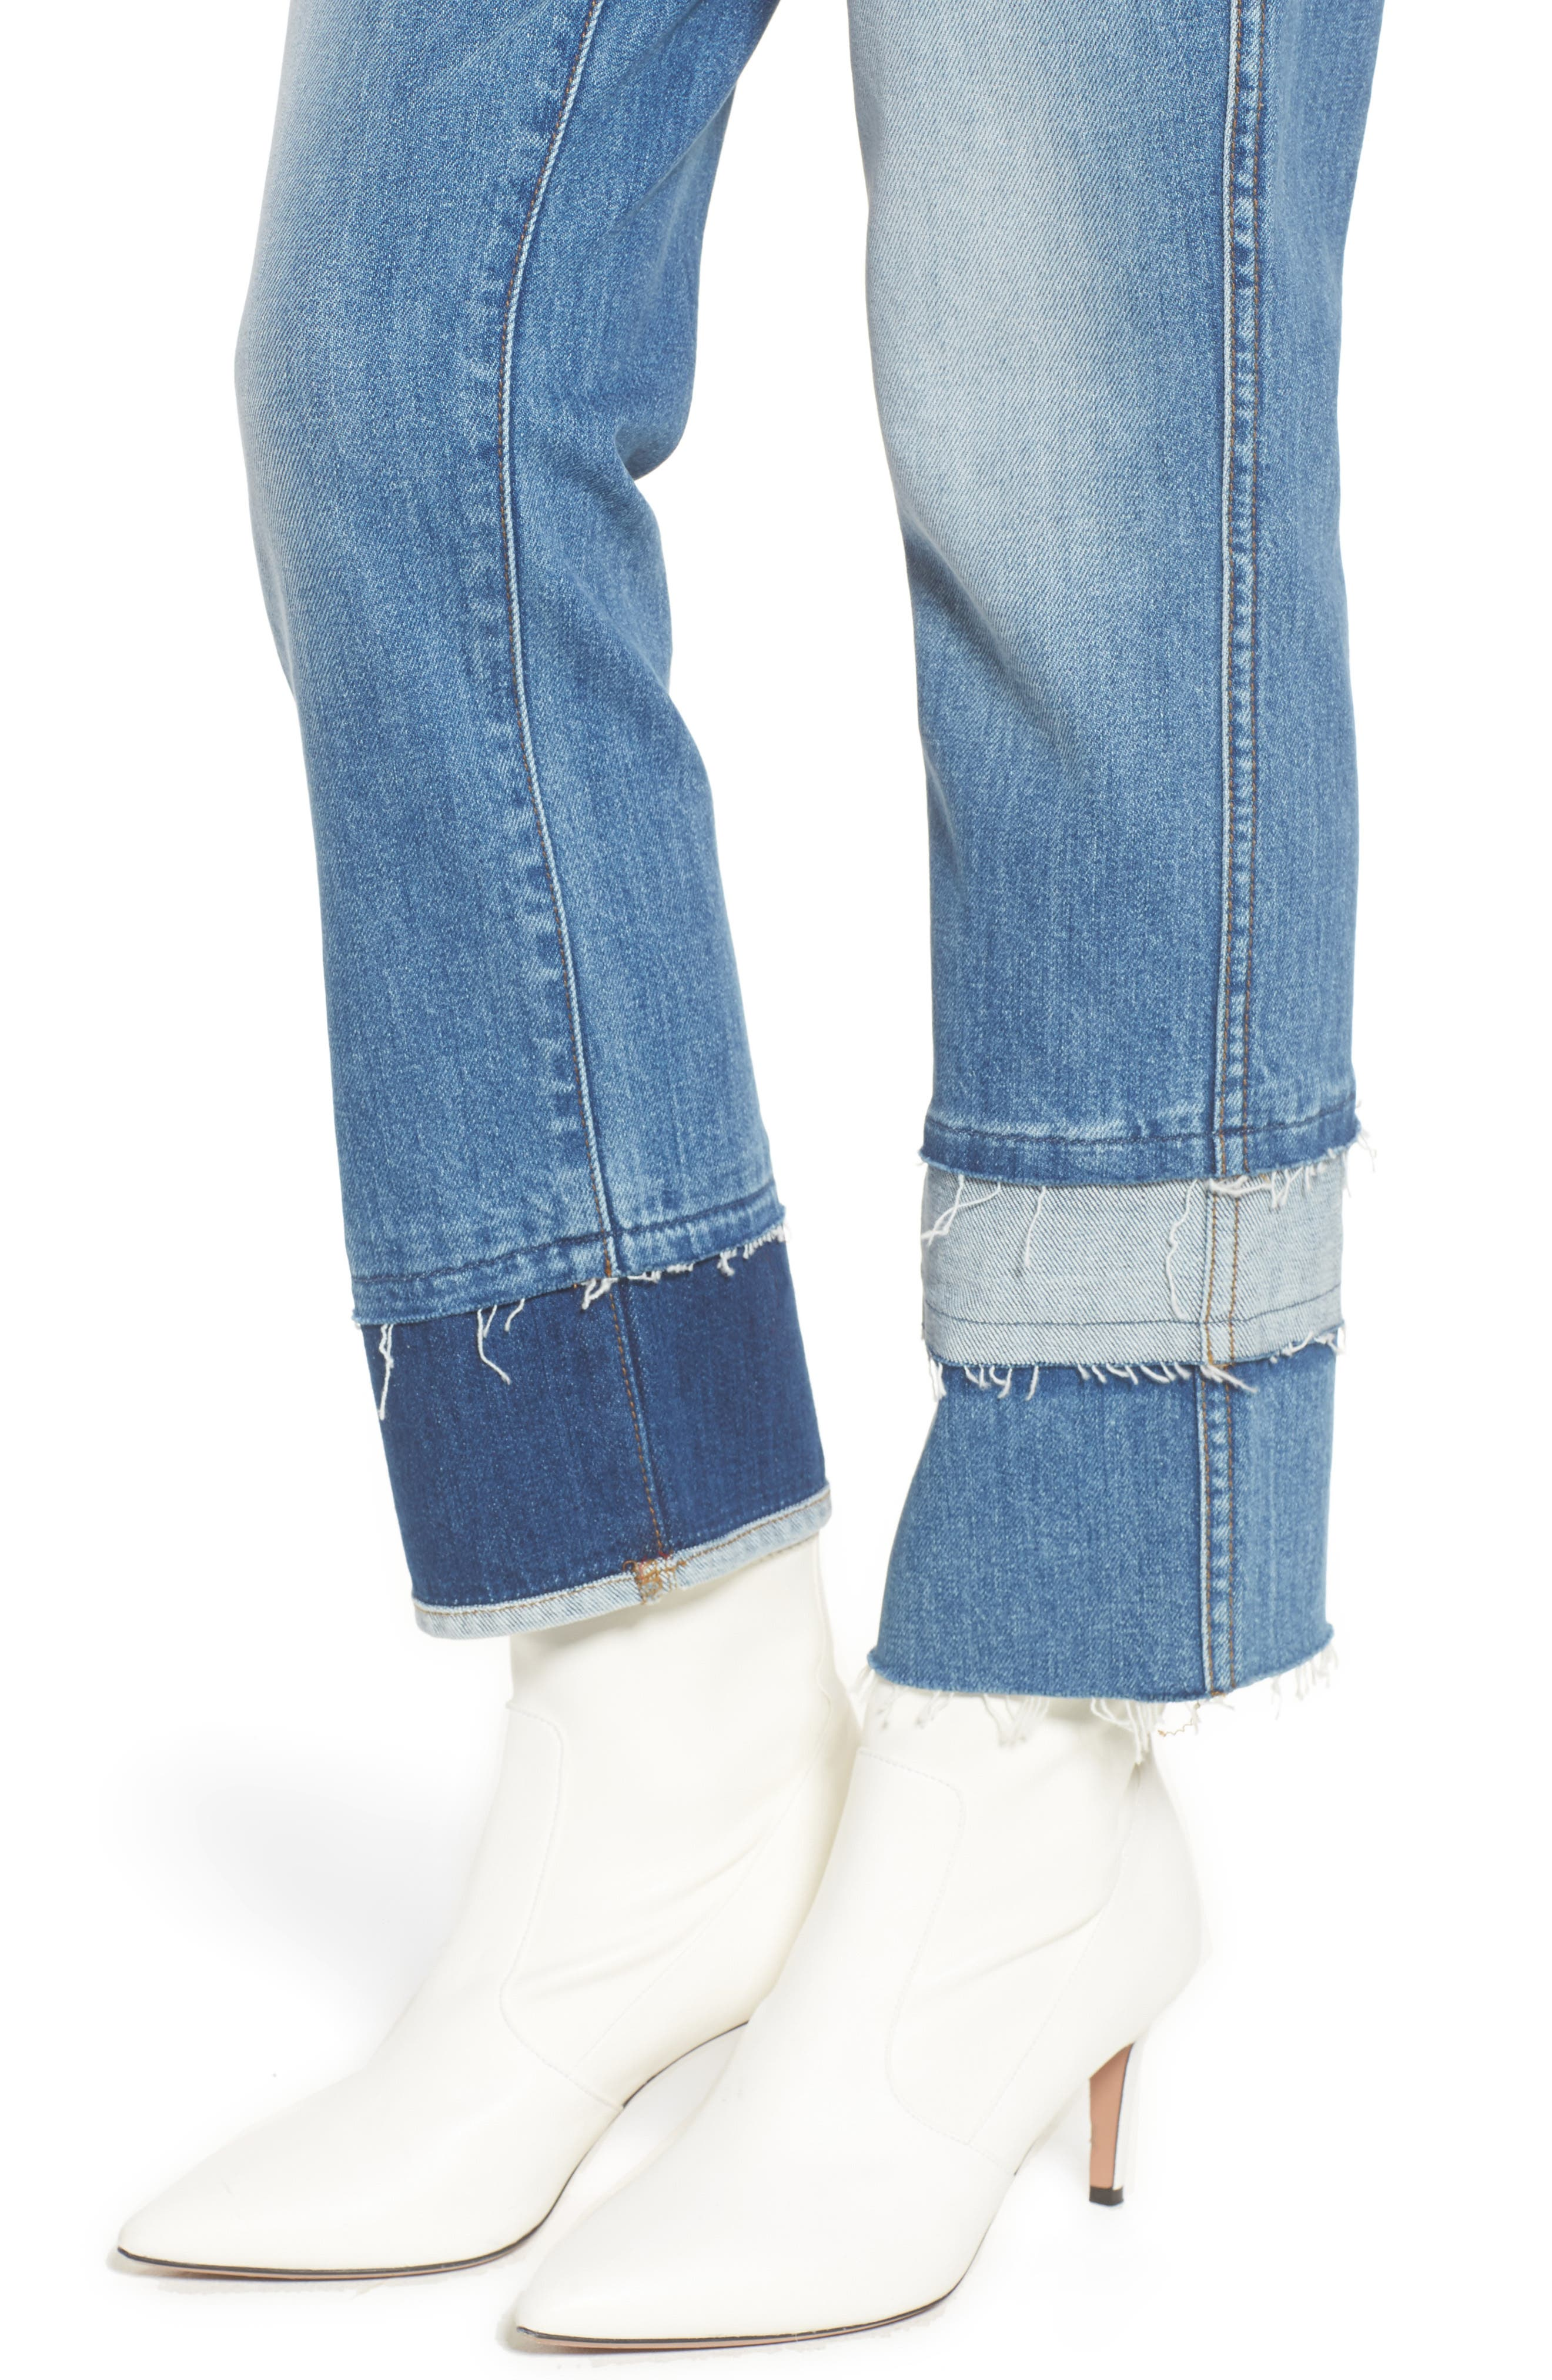 Edie Pieced Hem Cropped Jeans,                             Alternate thumbnail 4, color,                             401